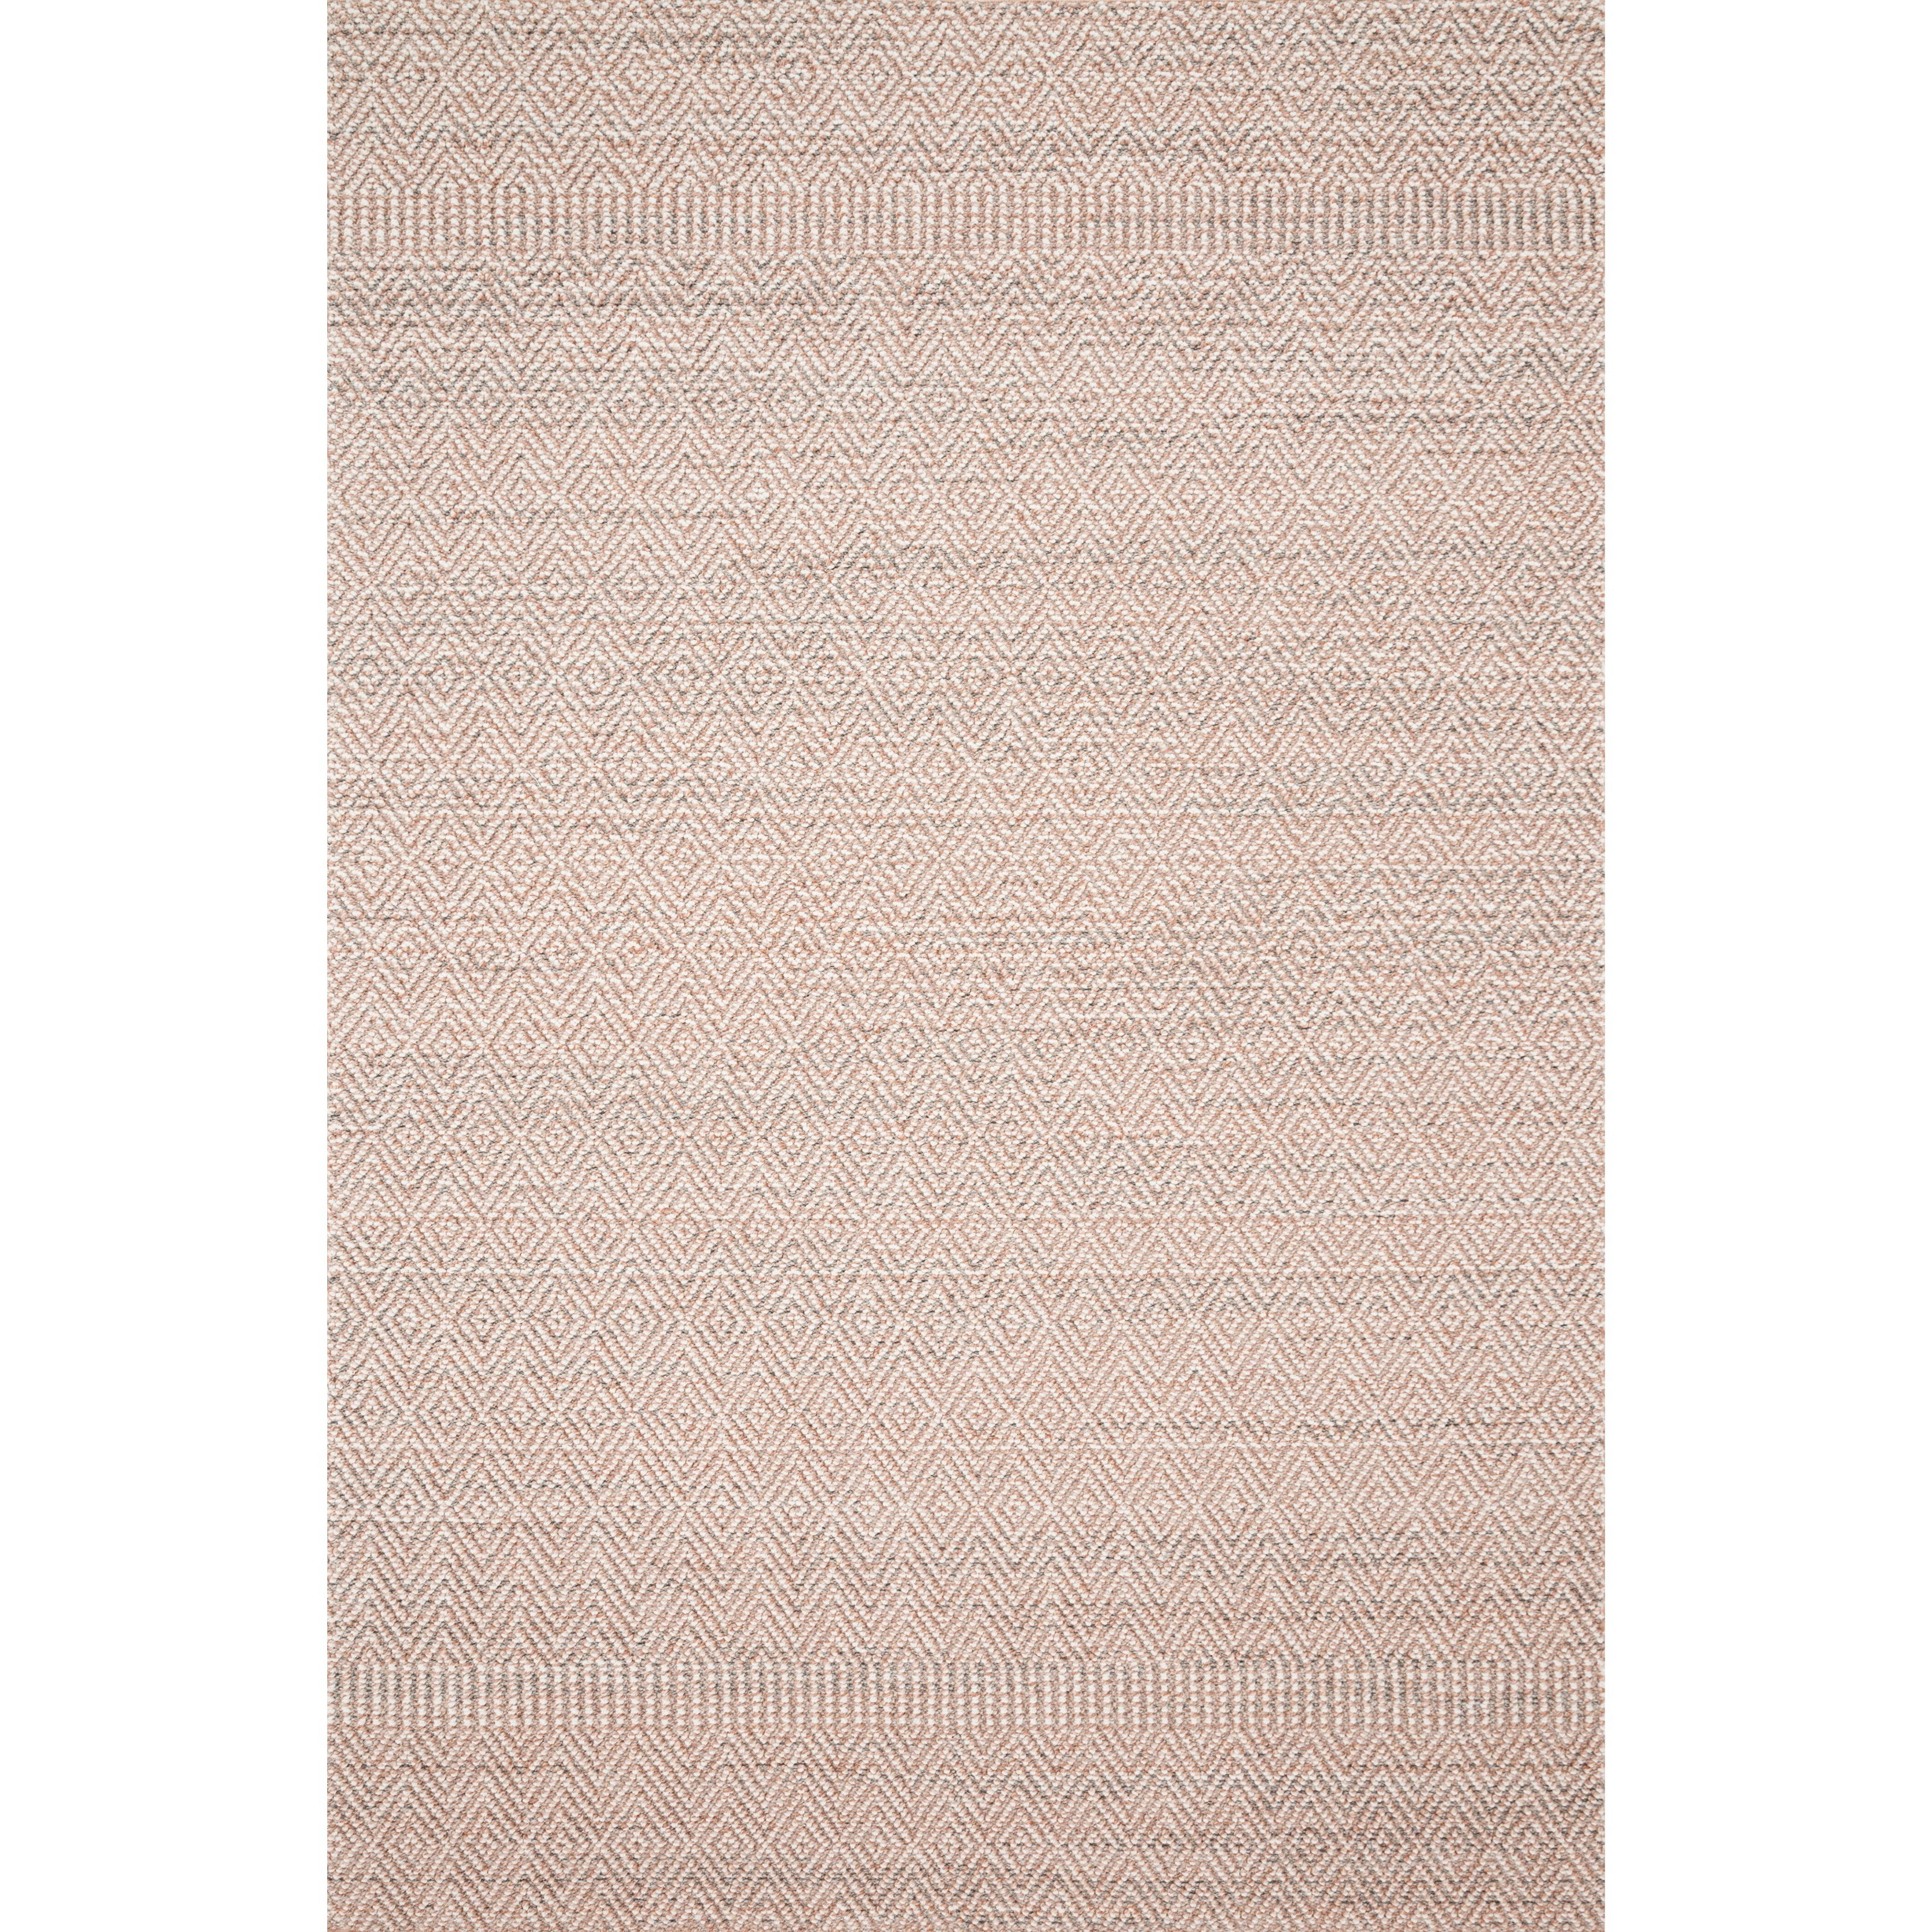 """Cole 4'0"""" x 5'9"""" Blush / Ivory Rug by Loloi Rugs at Virginia Furniture Market"""